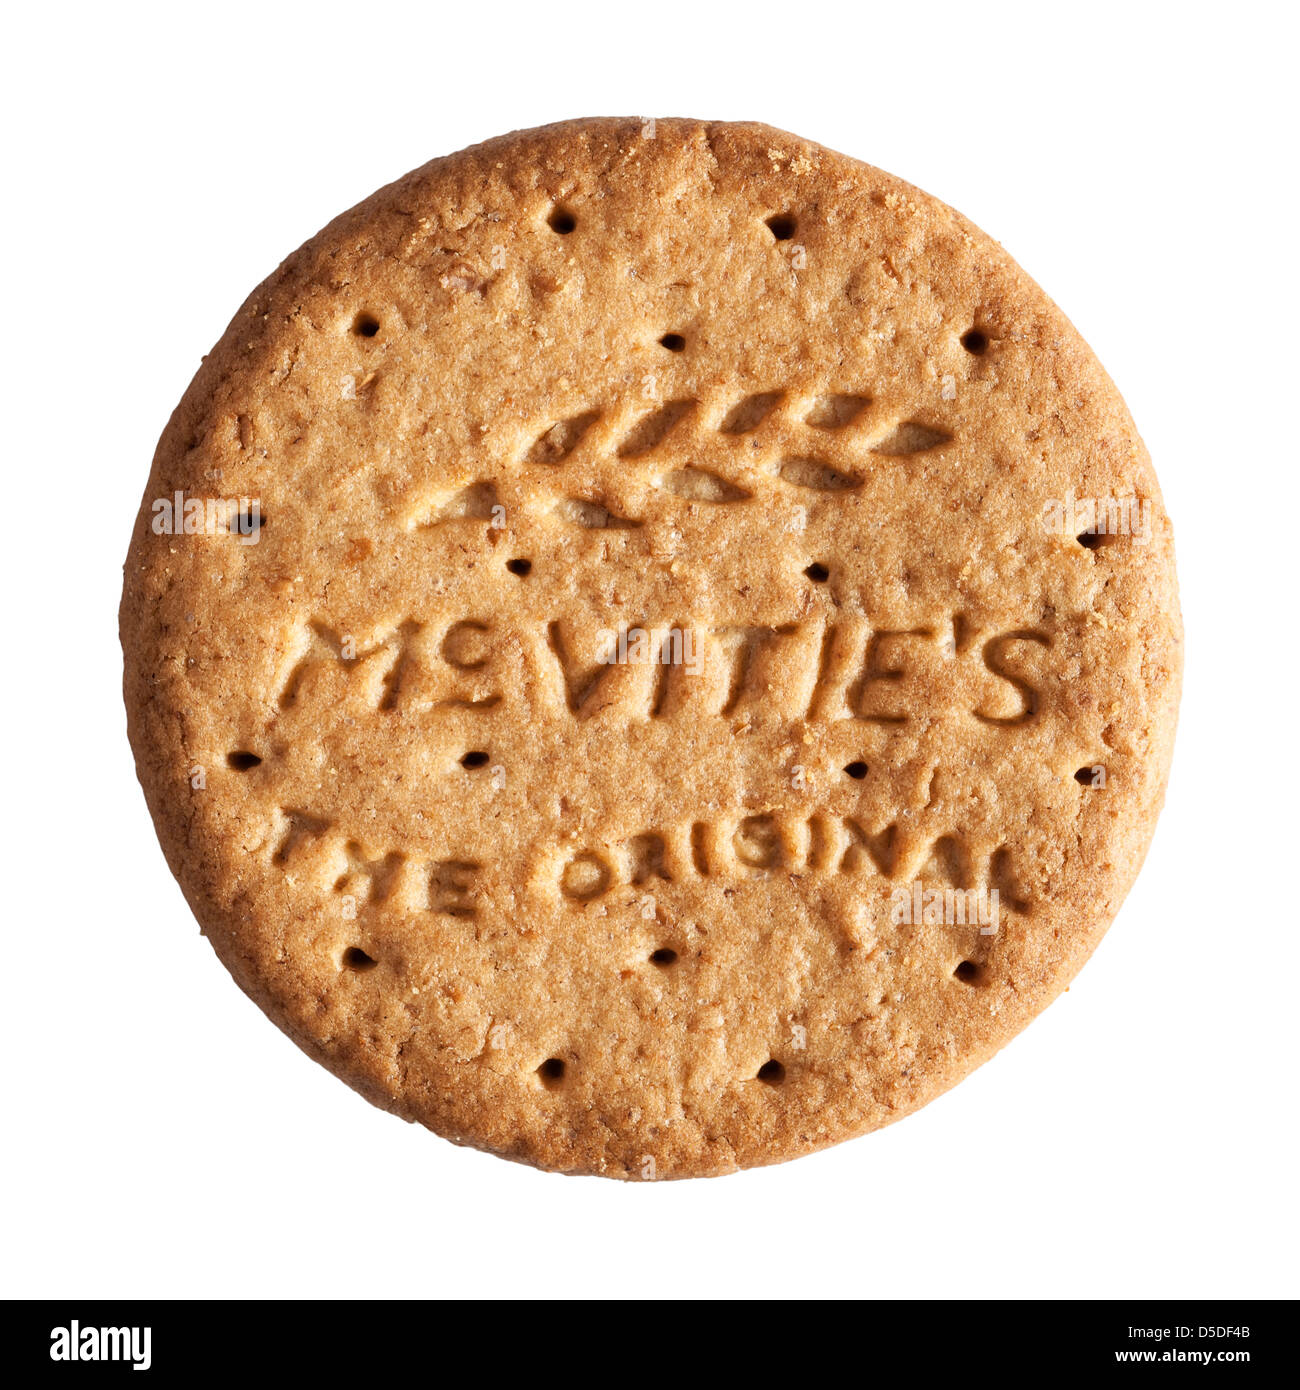 A Mcvitie's original digestive biscuit on a white background - Stock Image